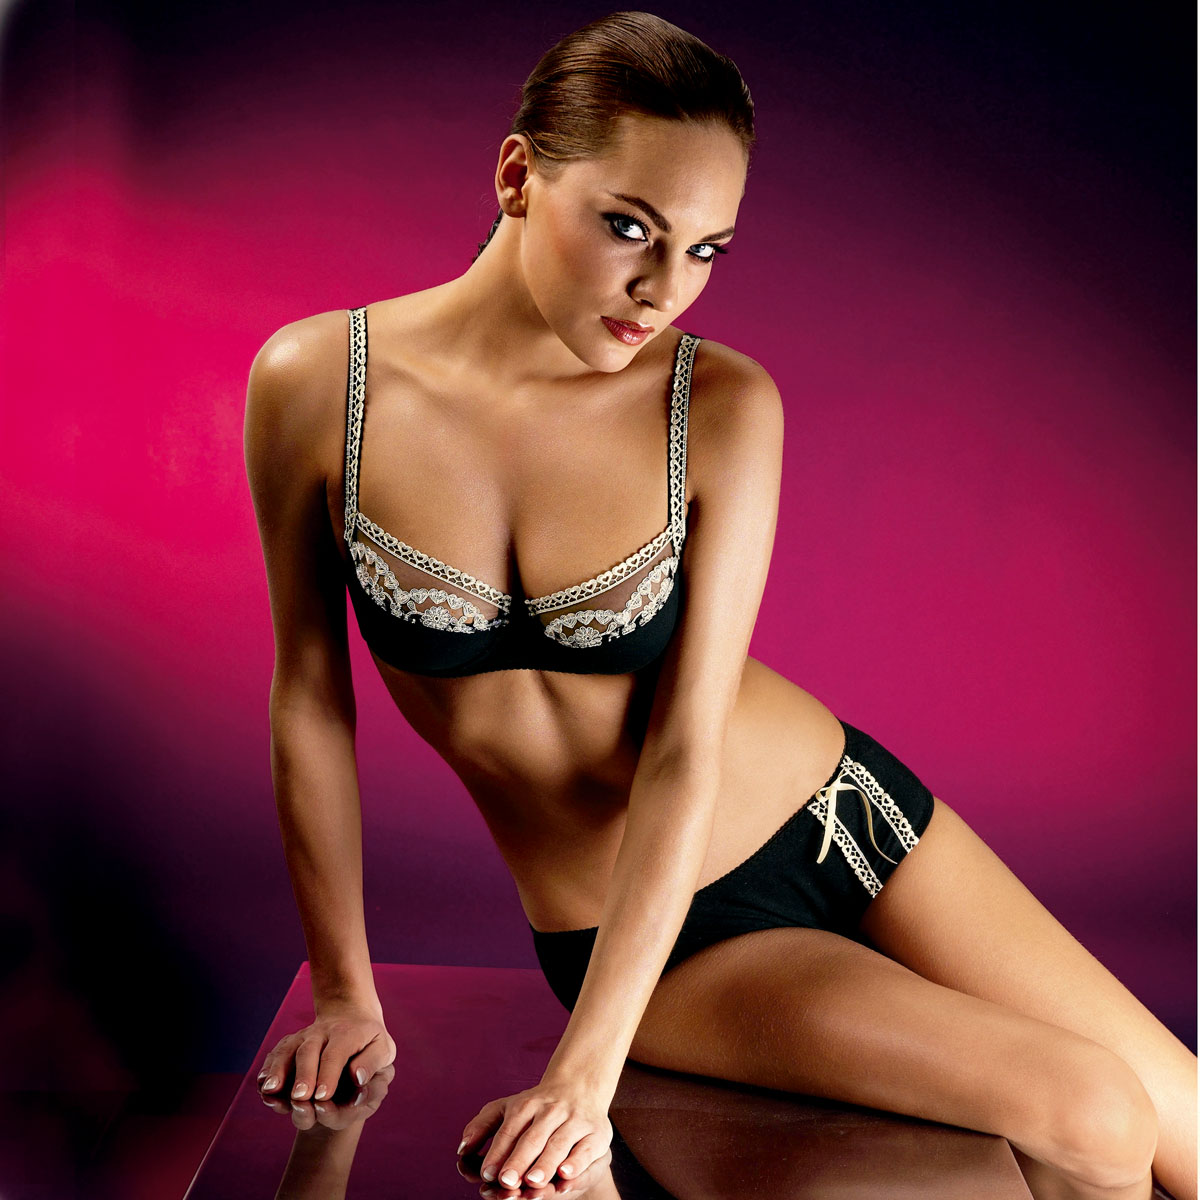 dating events telford